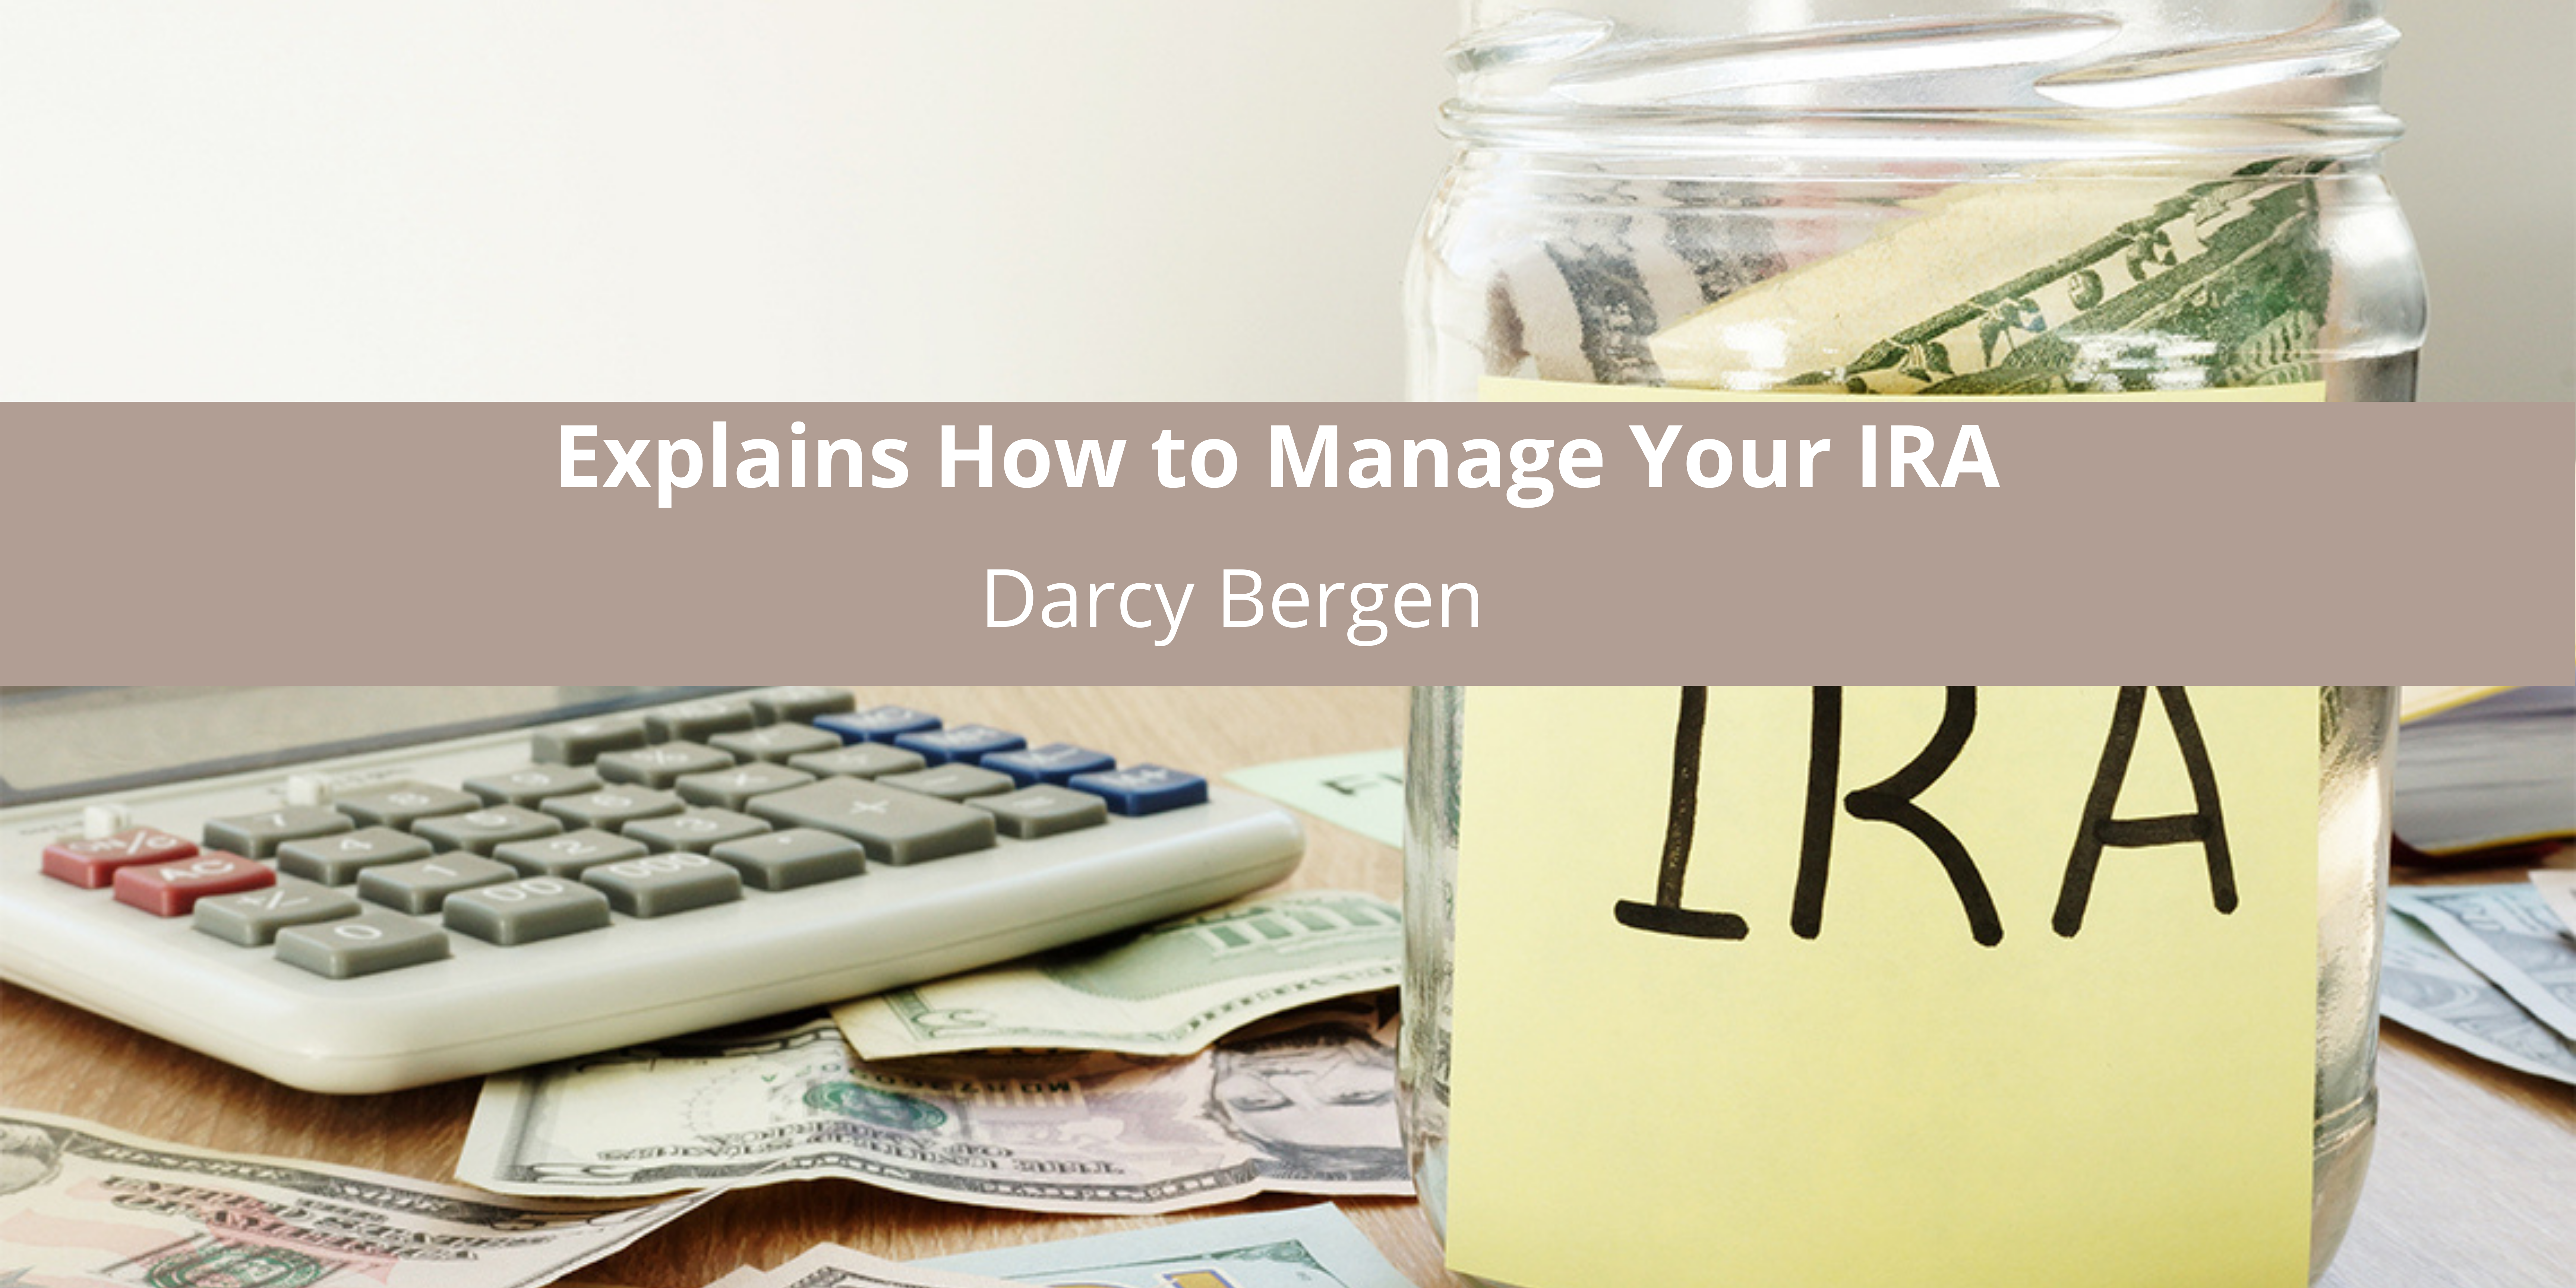 Darcy Bergen Explains How to Manage Your IRA